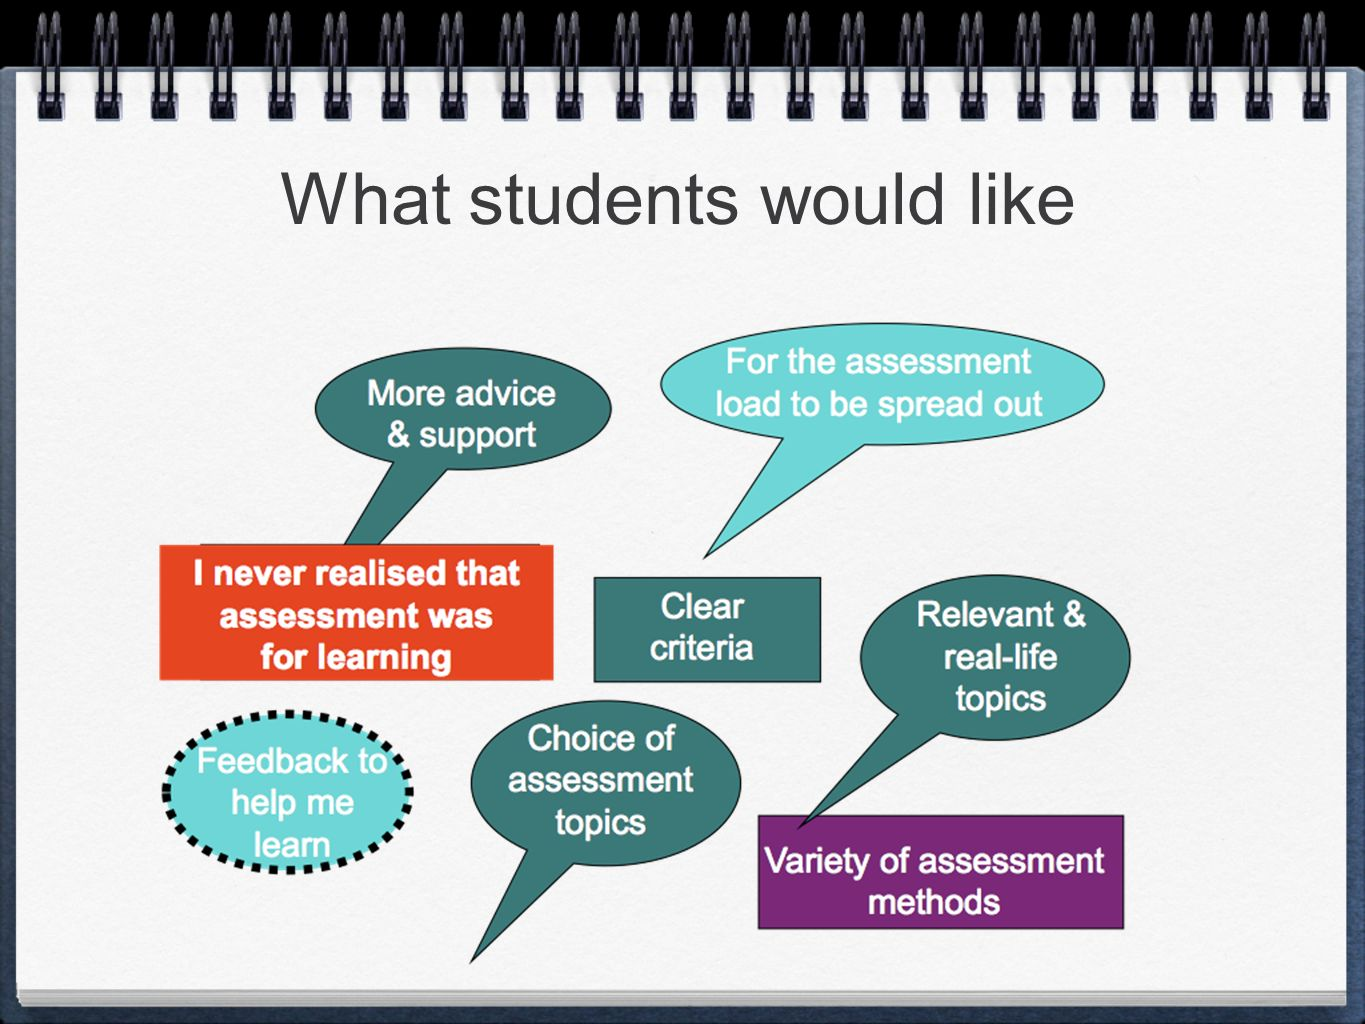 Assessment methods can affect the type and usefulness of the feedback given